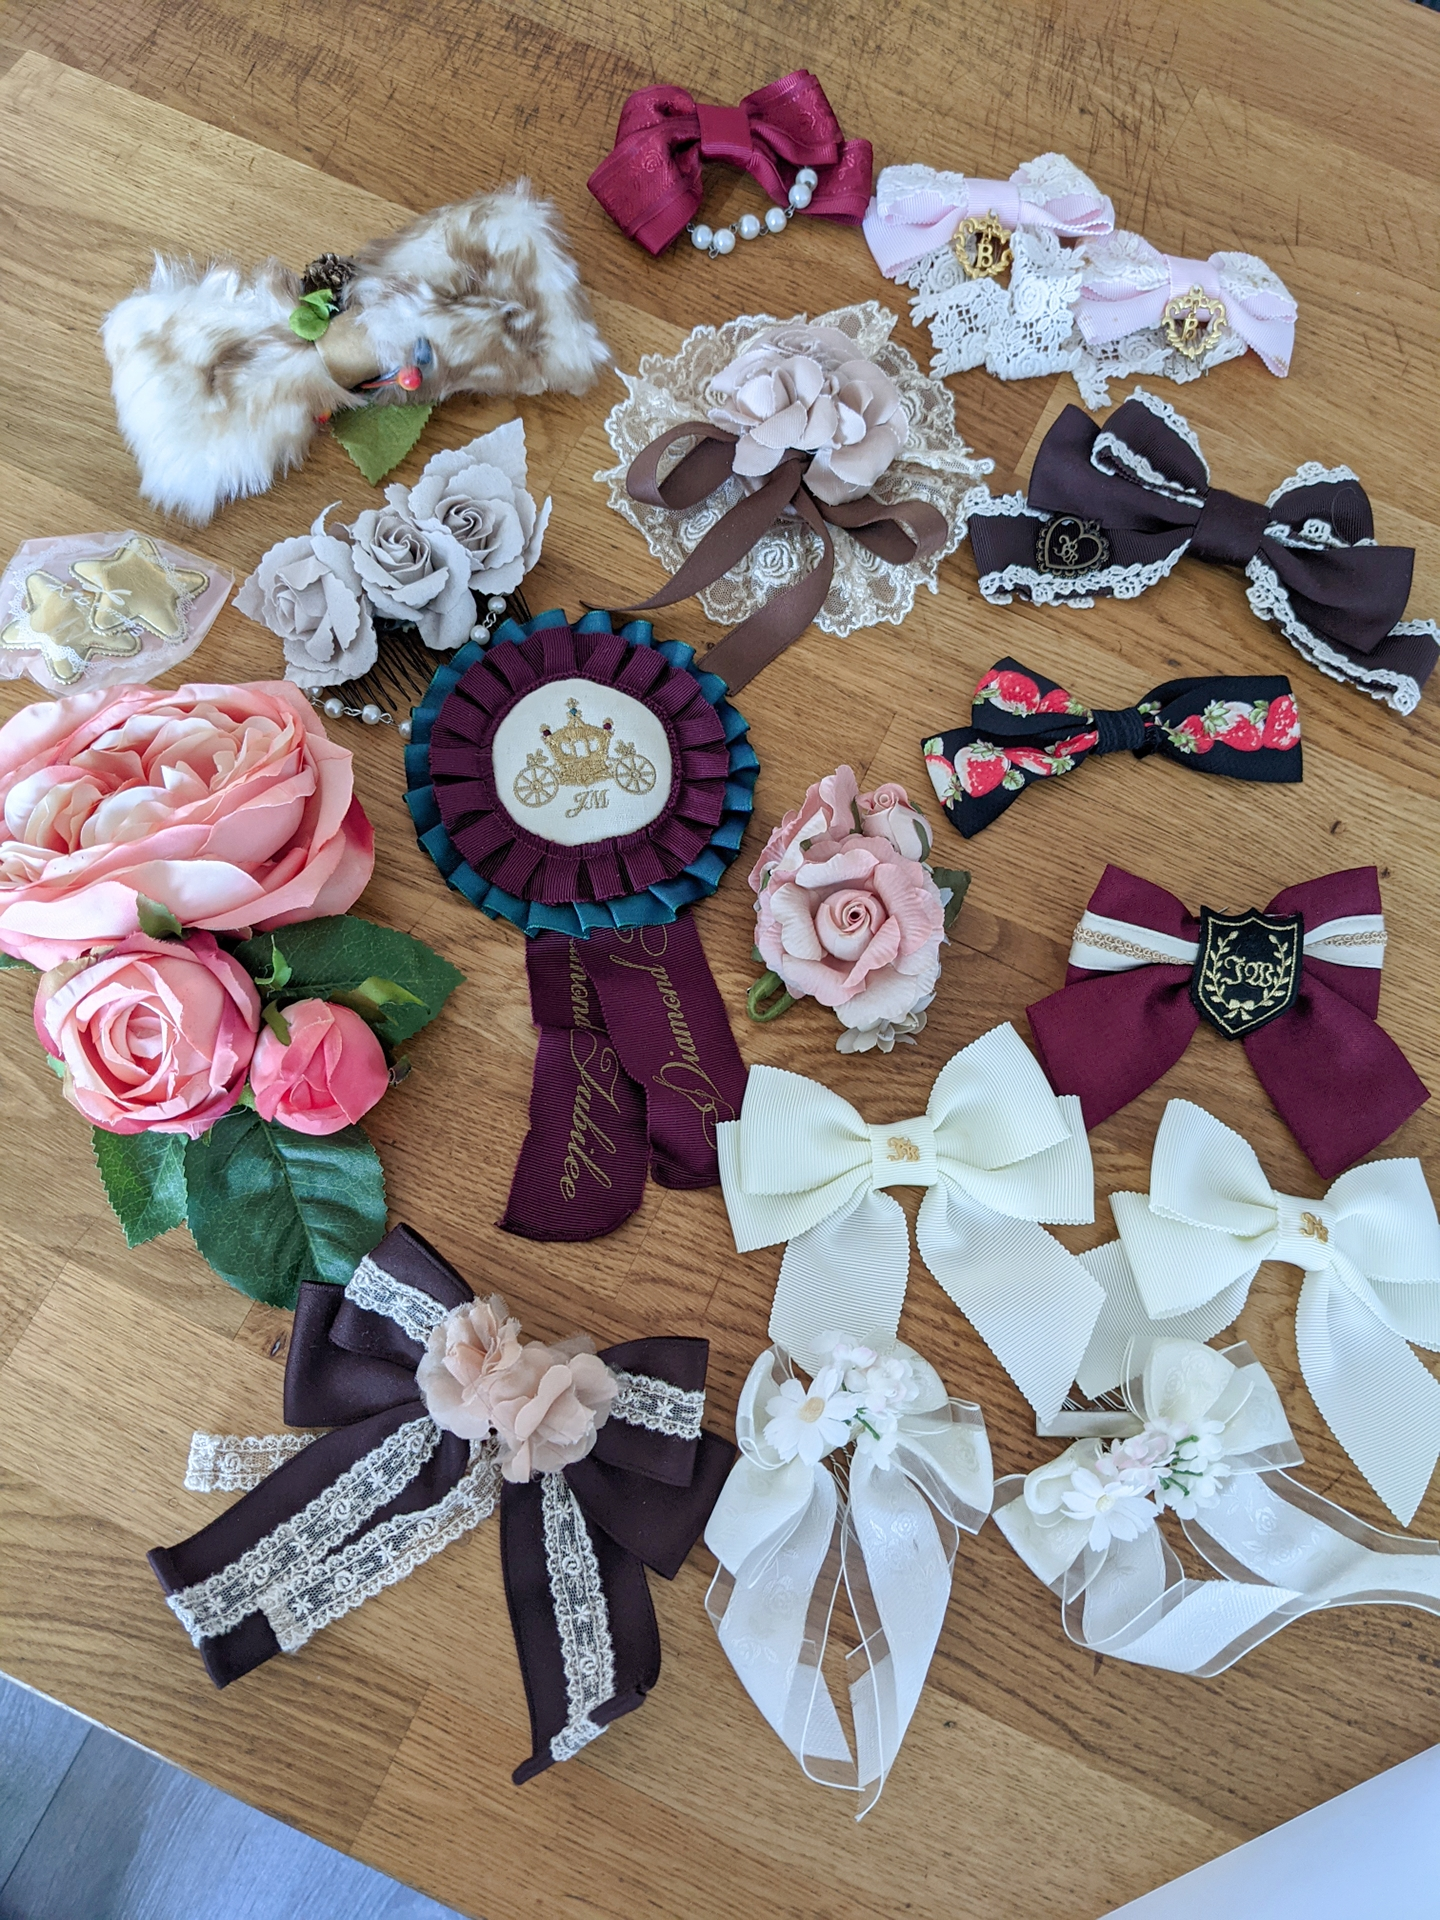 Assorted bows and clips